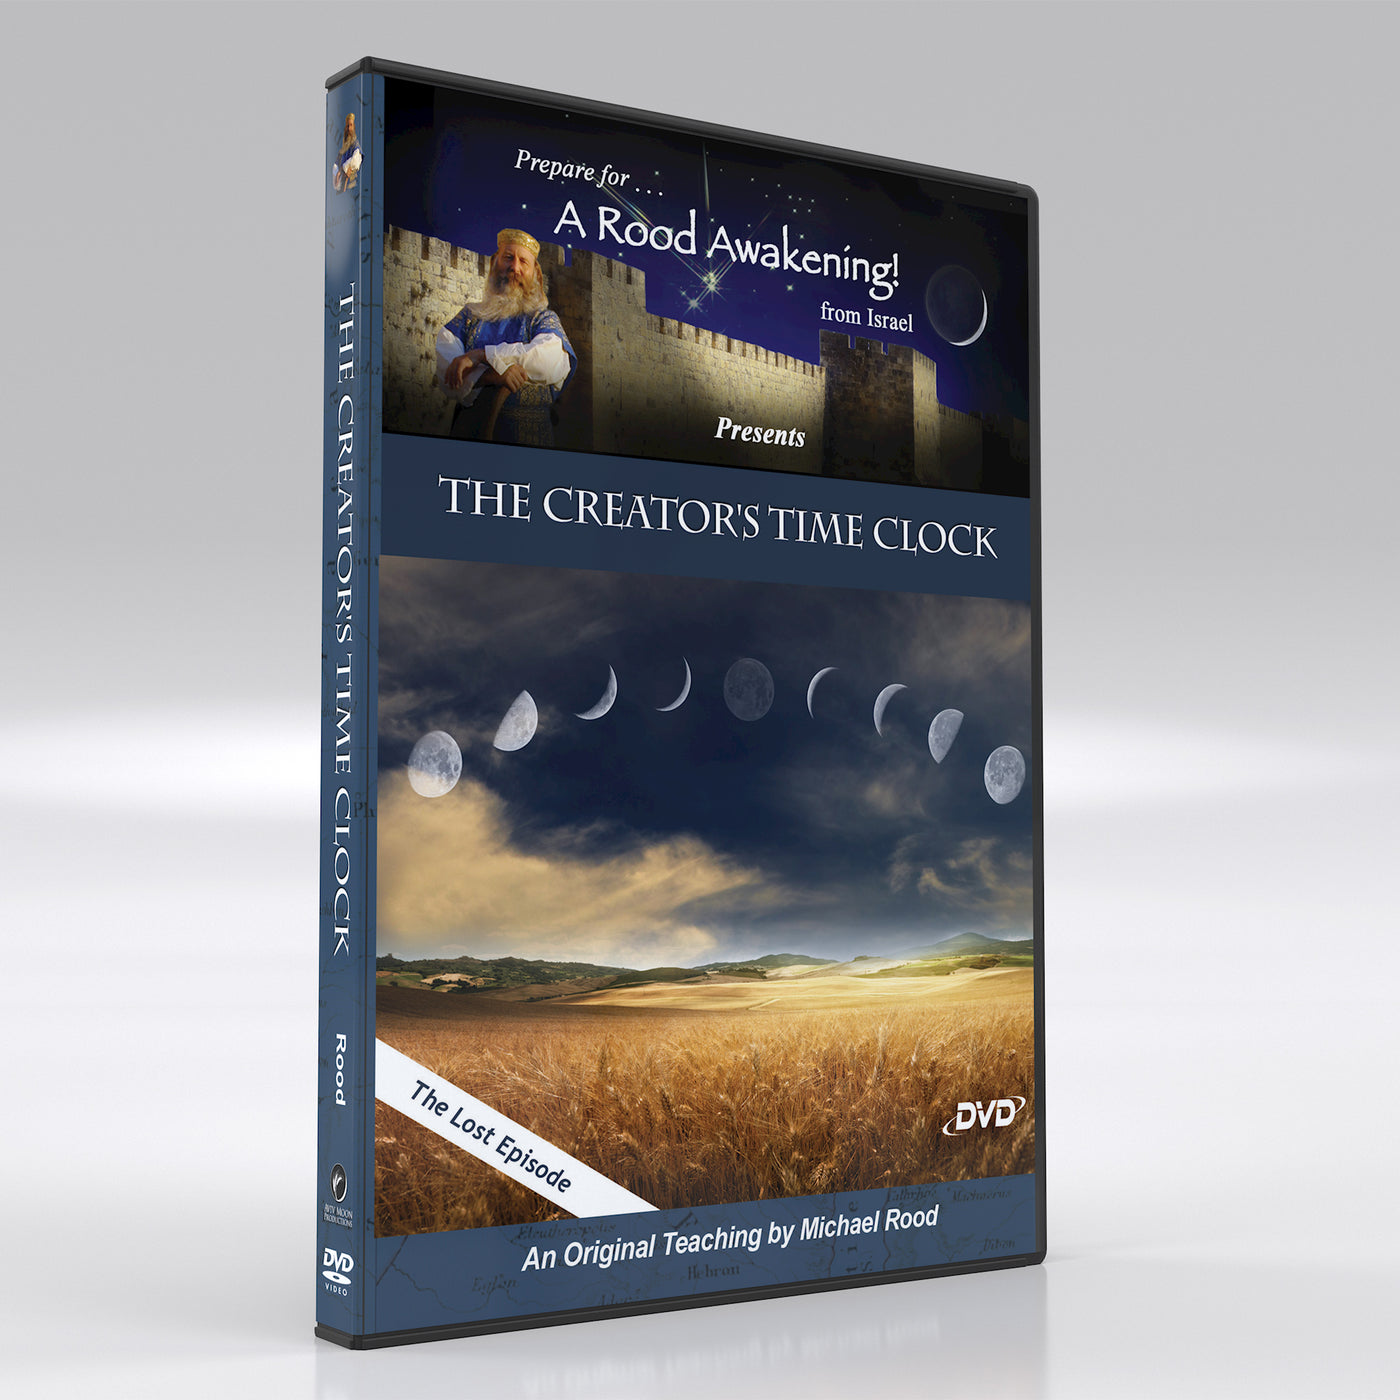 The Creator's Time Clock (DVD)